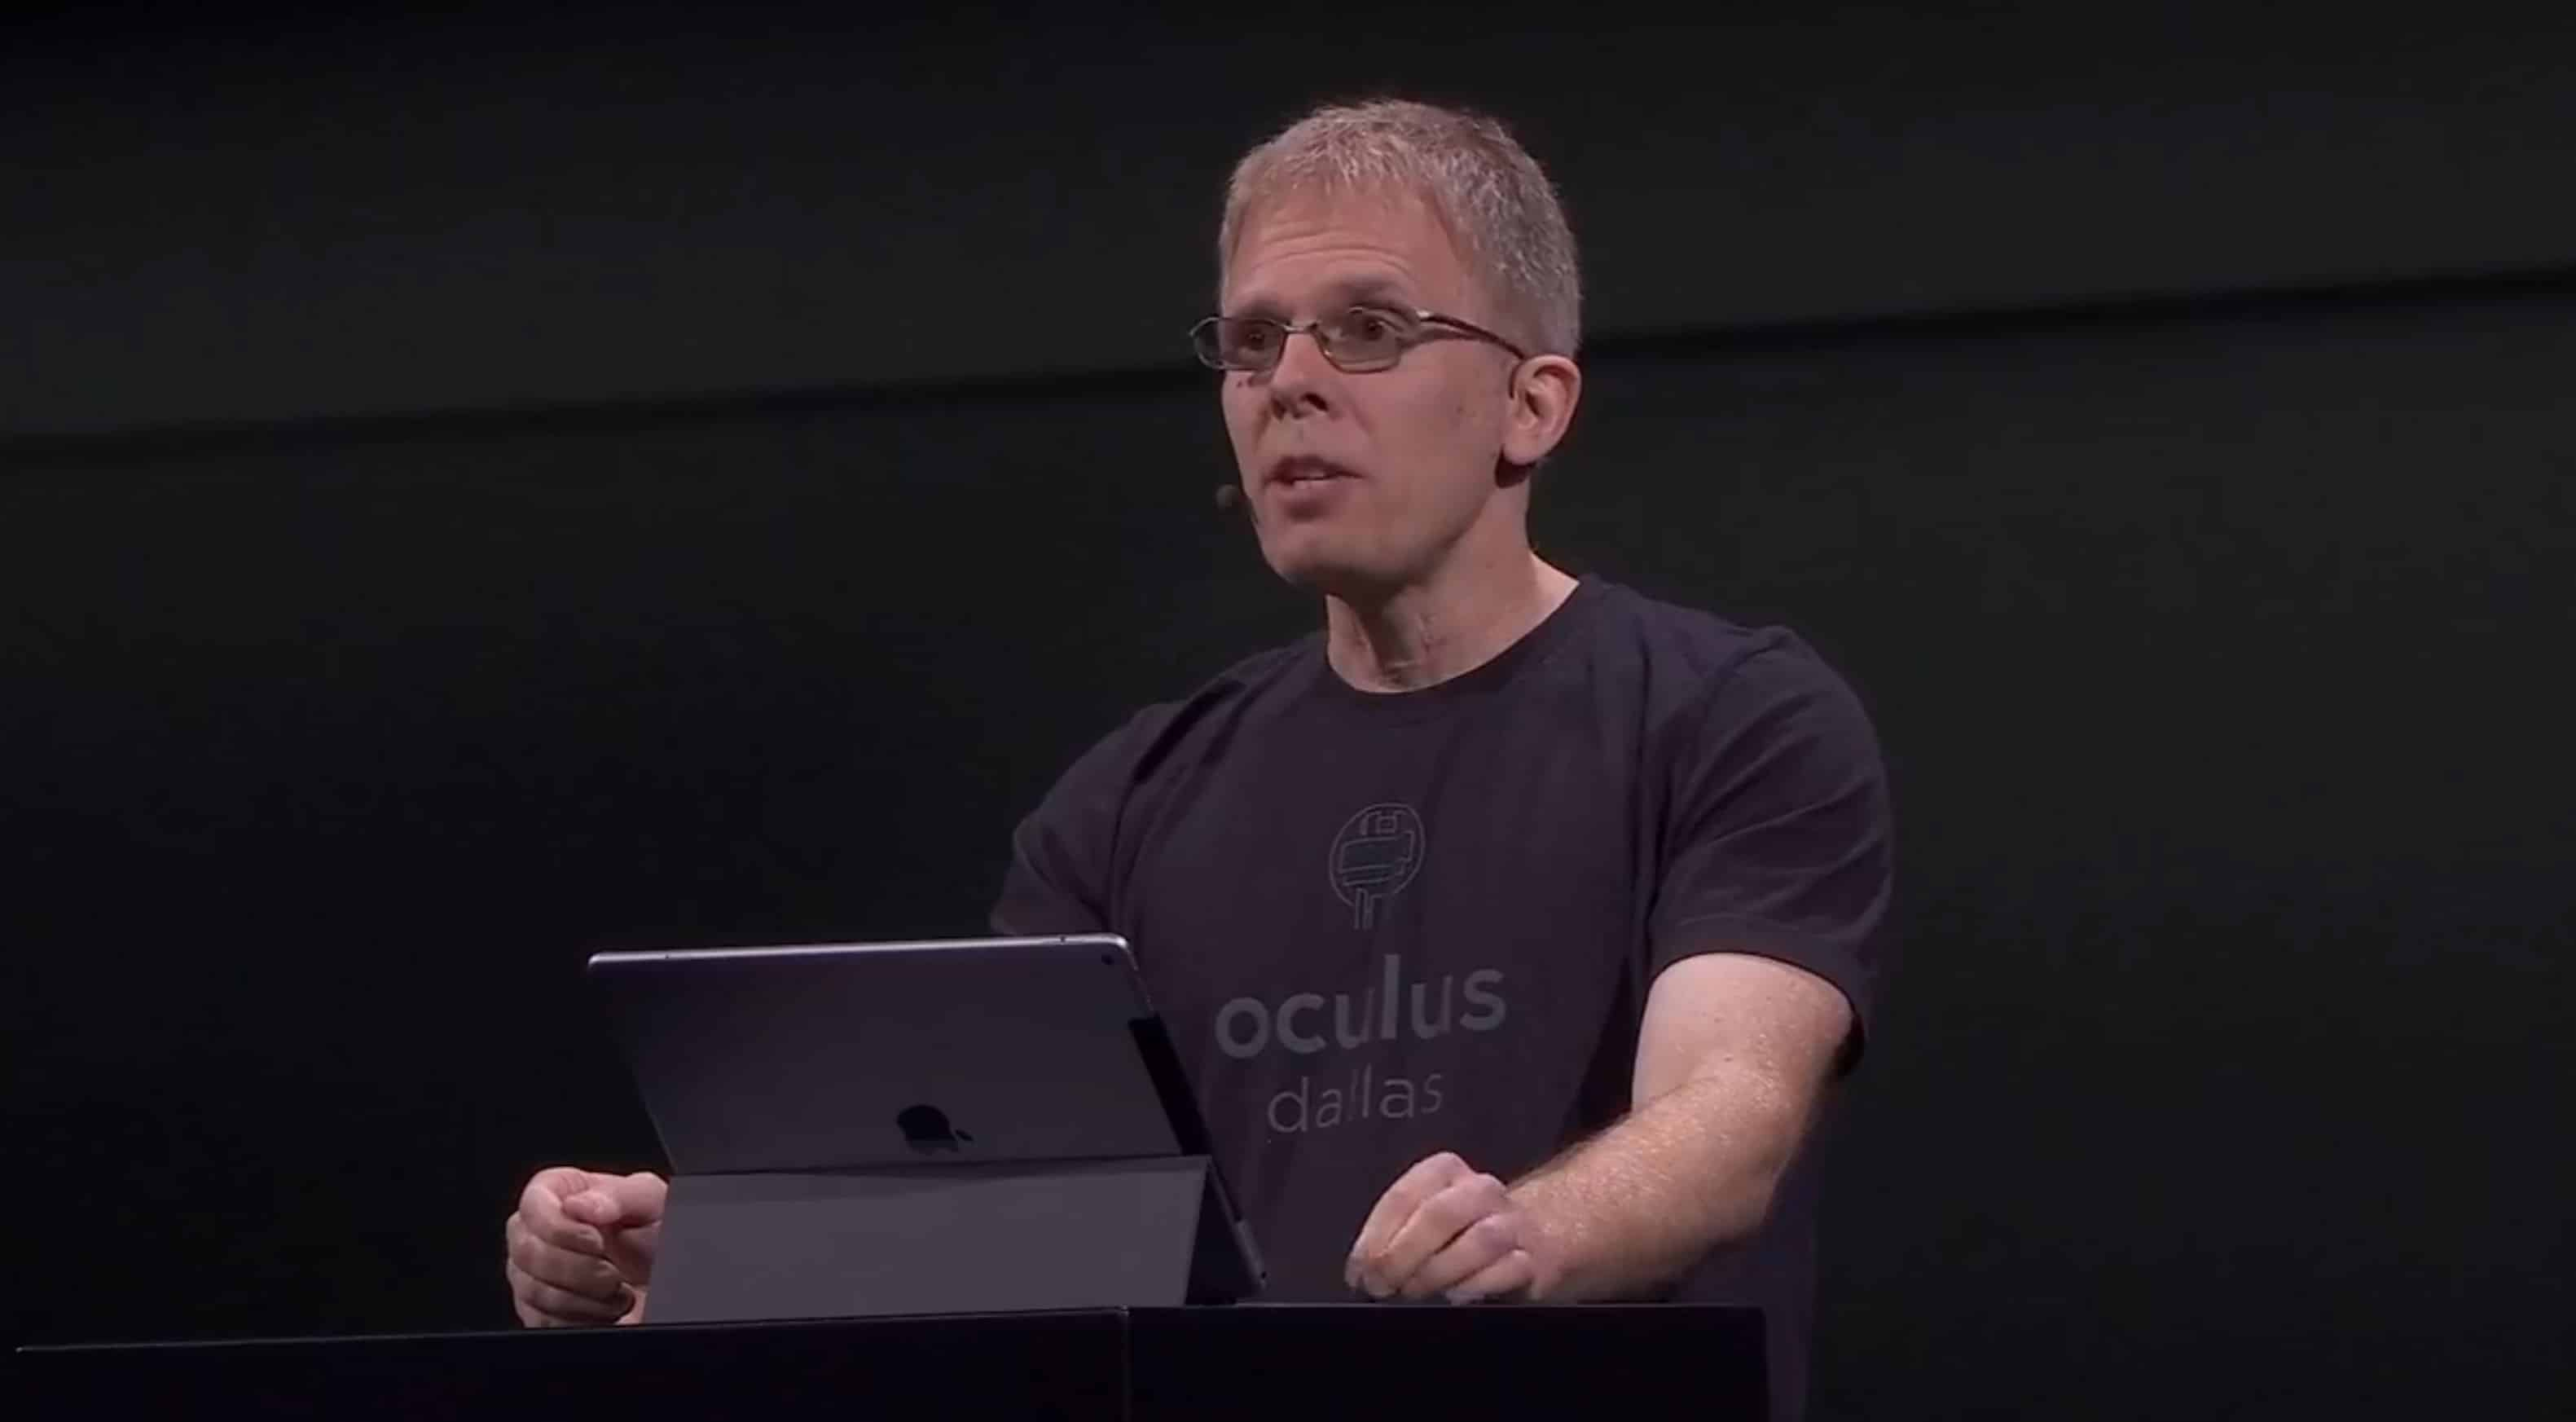 John Carmack at Oculus Connect 5